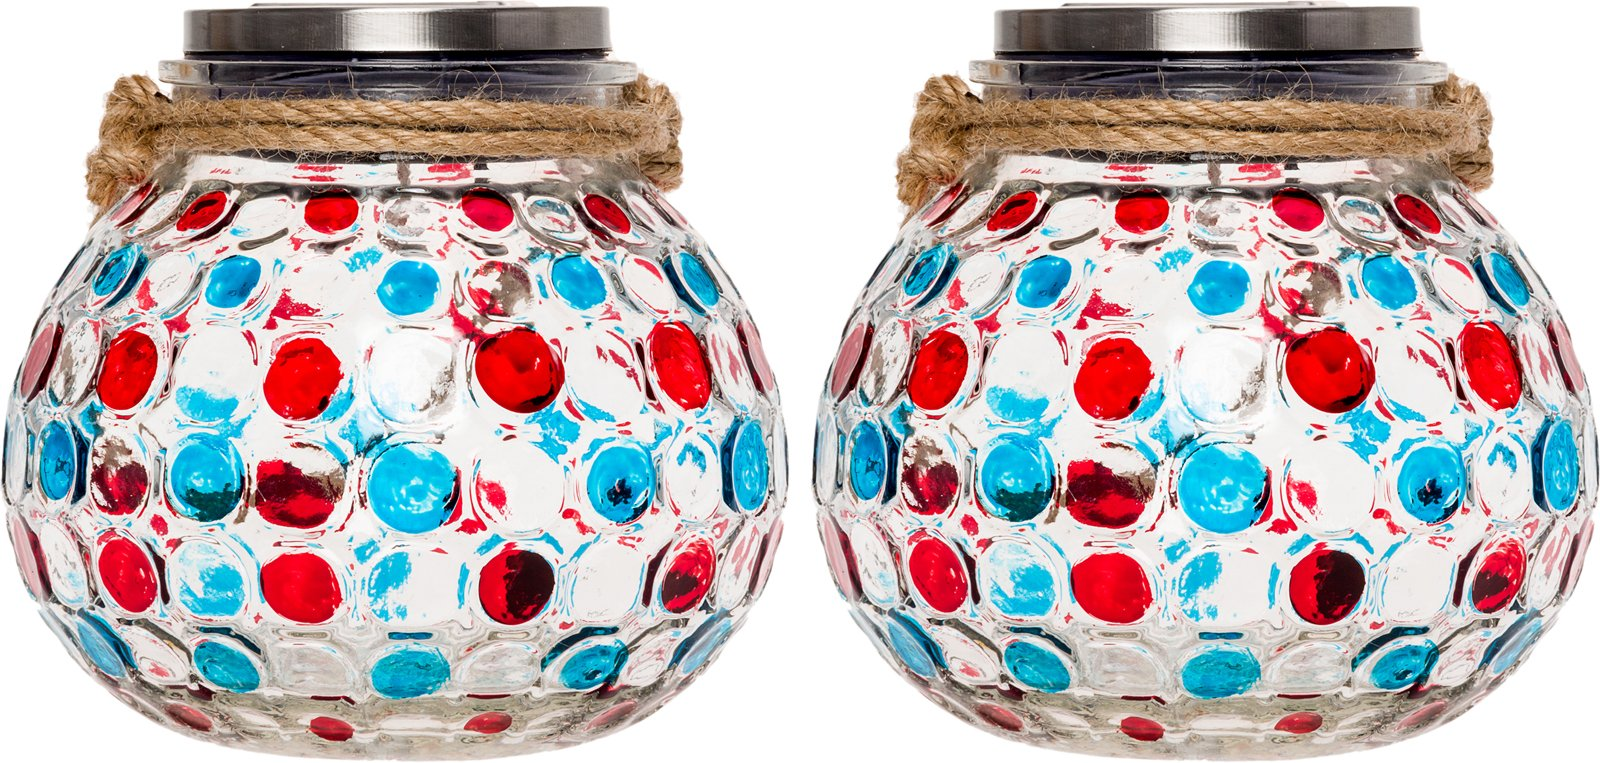 GreenLighting 2 Pack Dotted Solar Jar Light - Decorative LED Glass Table Lantern (Blue/Red)